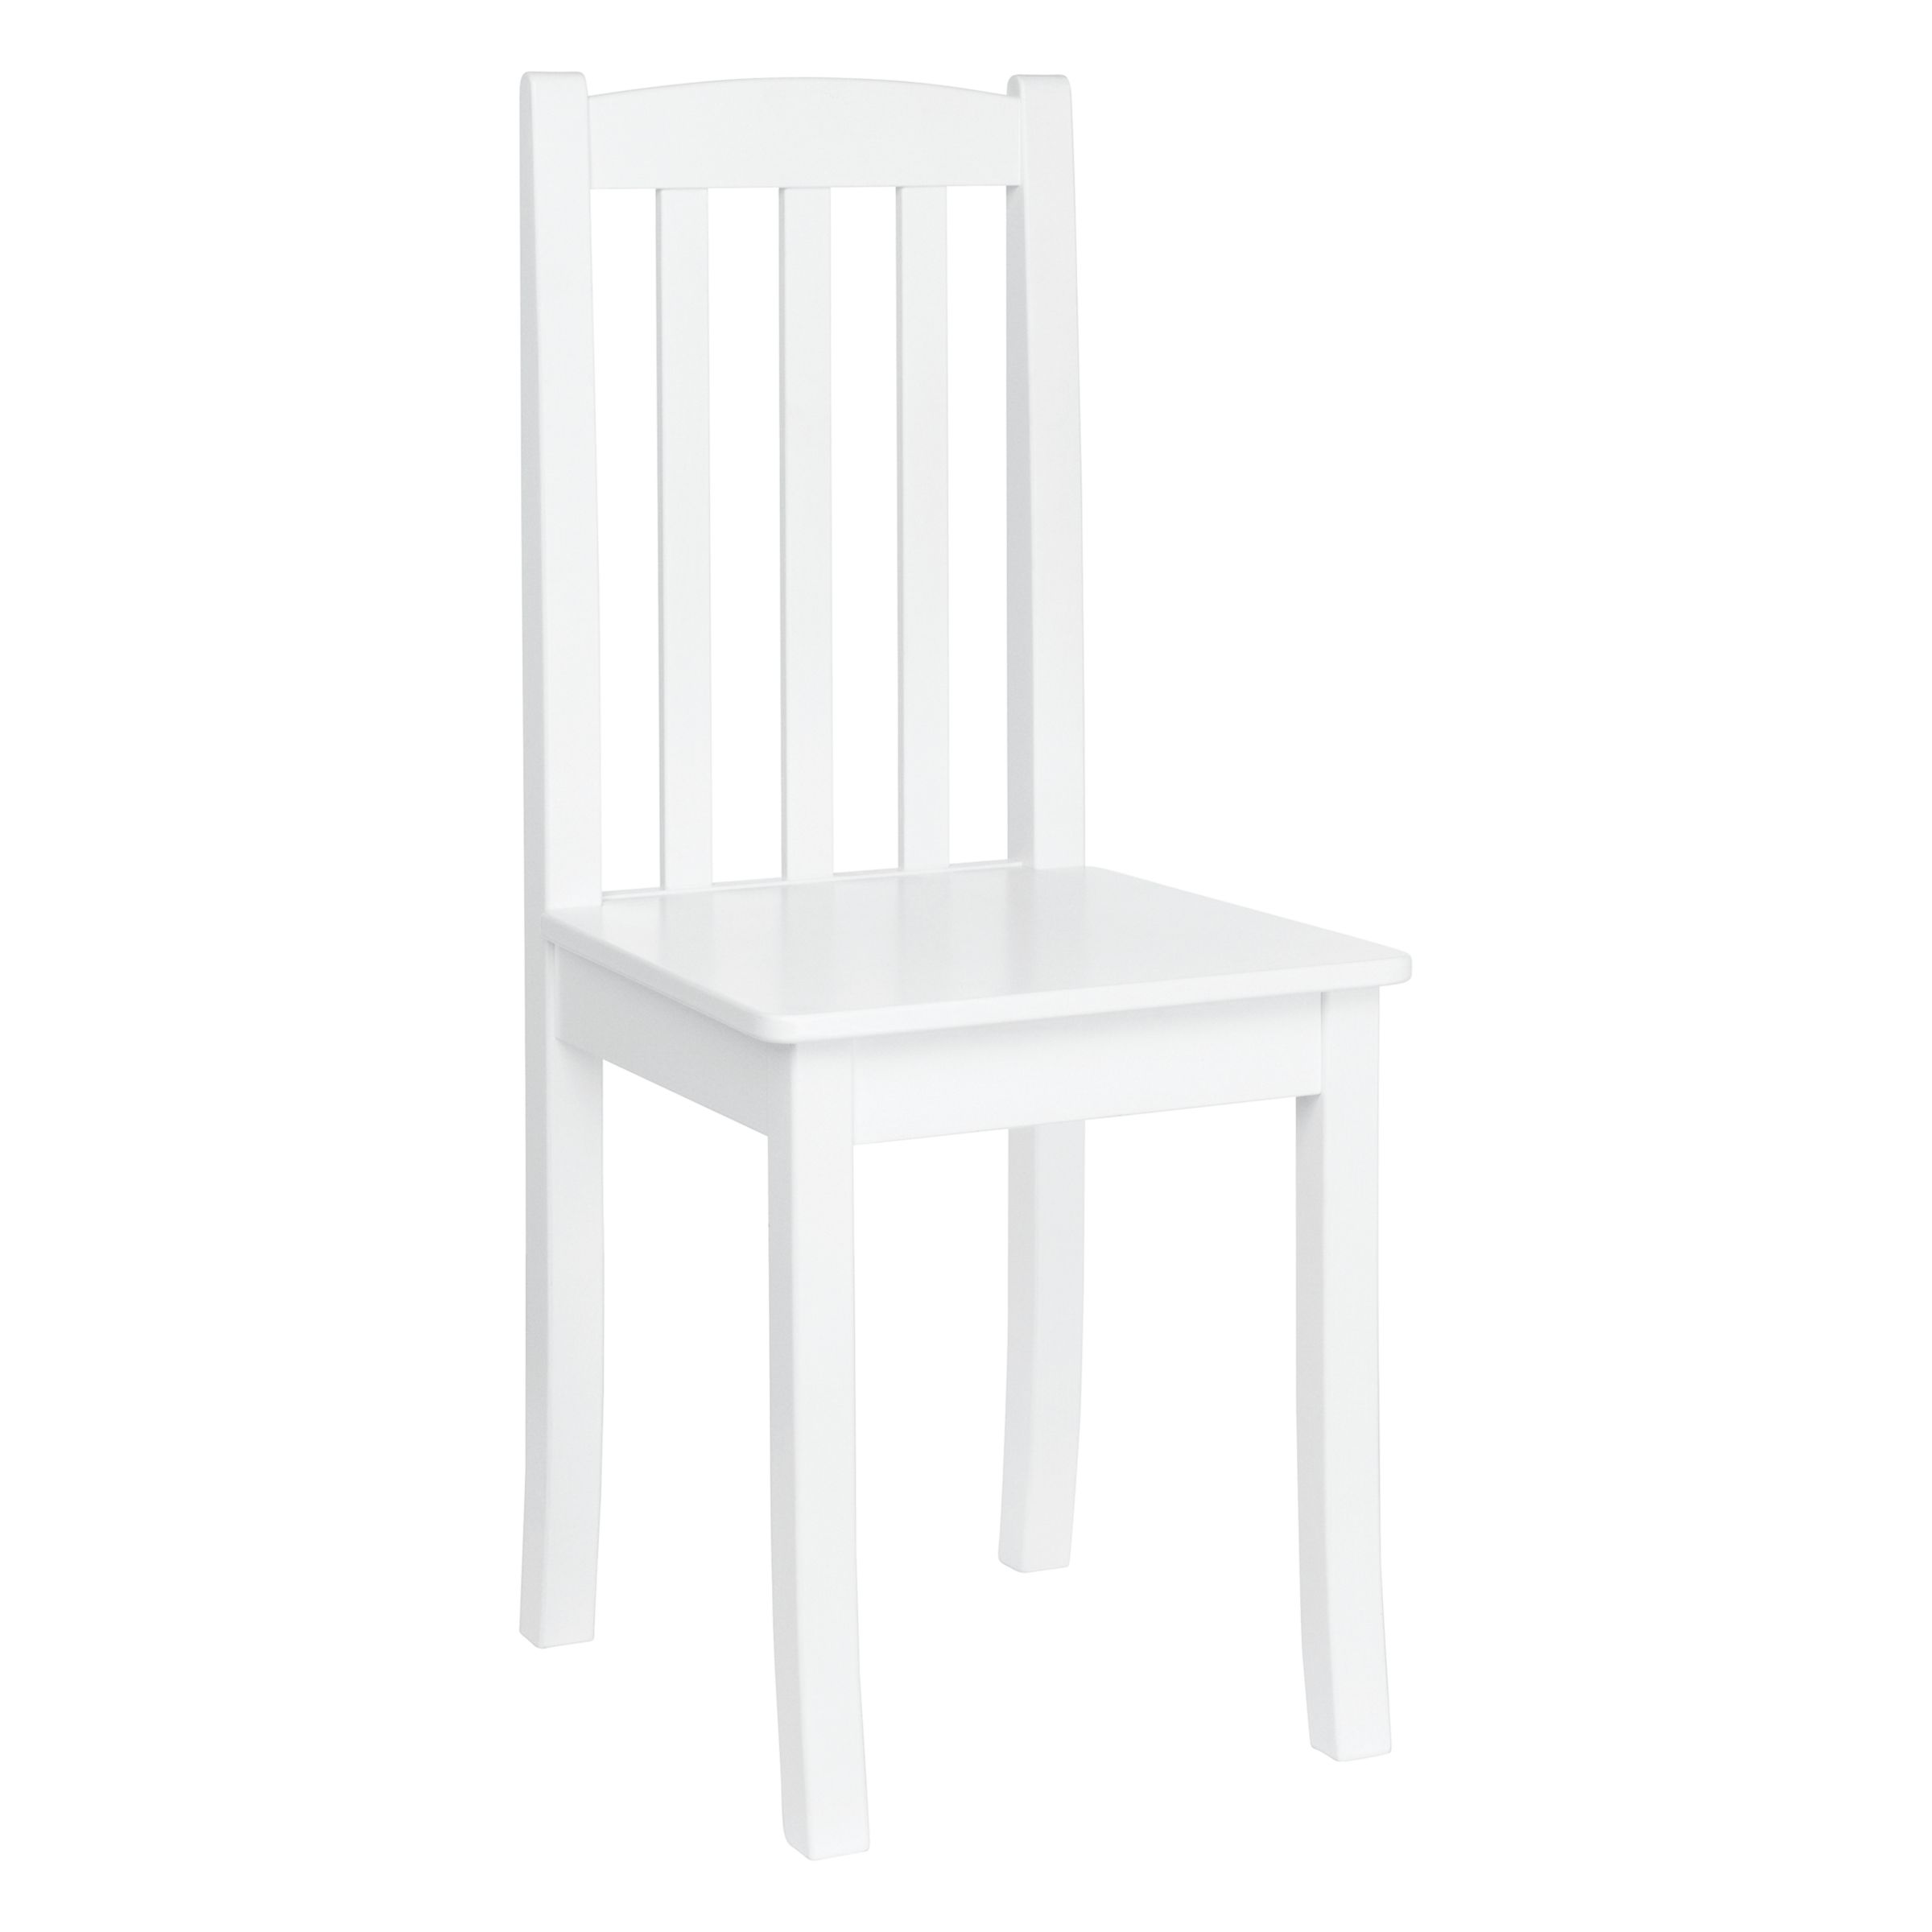 white wooden chair for desk camping chairs that fold up small children s tables buy kid at john lewis great little trading co nelson